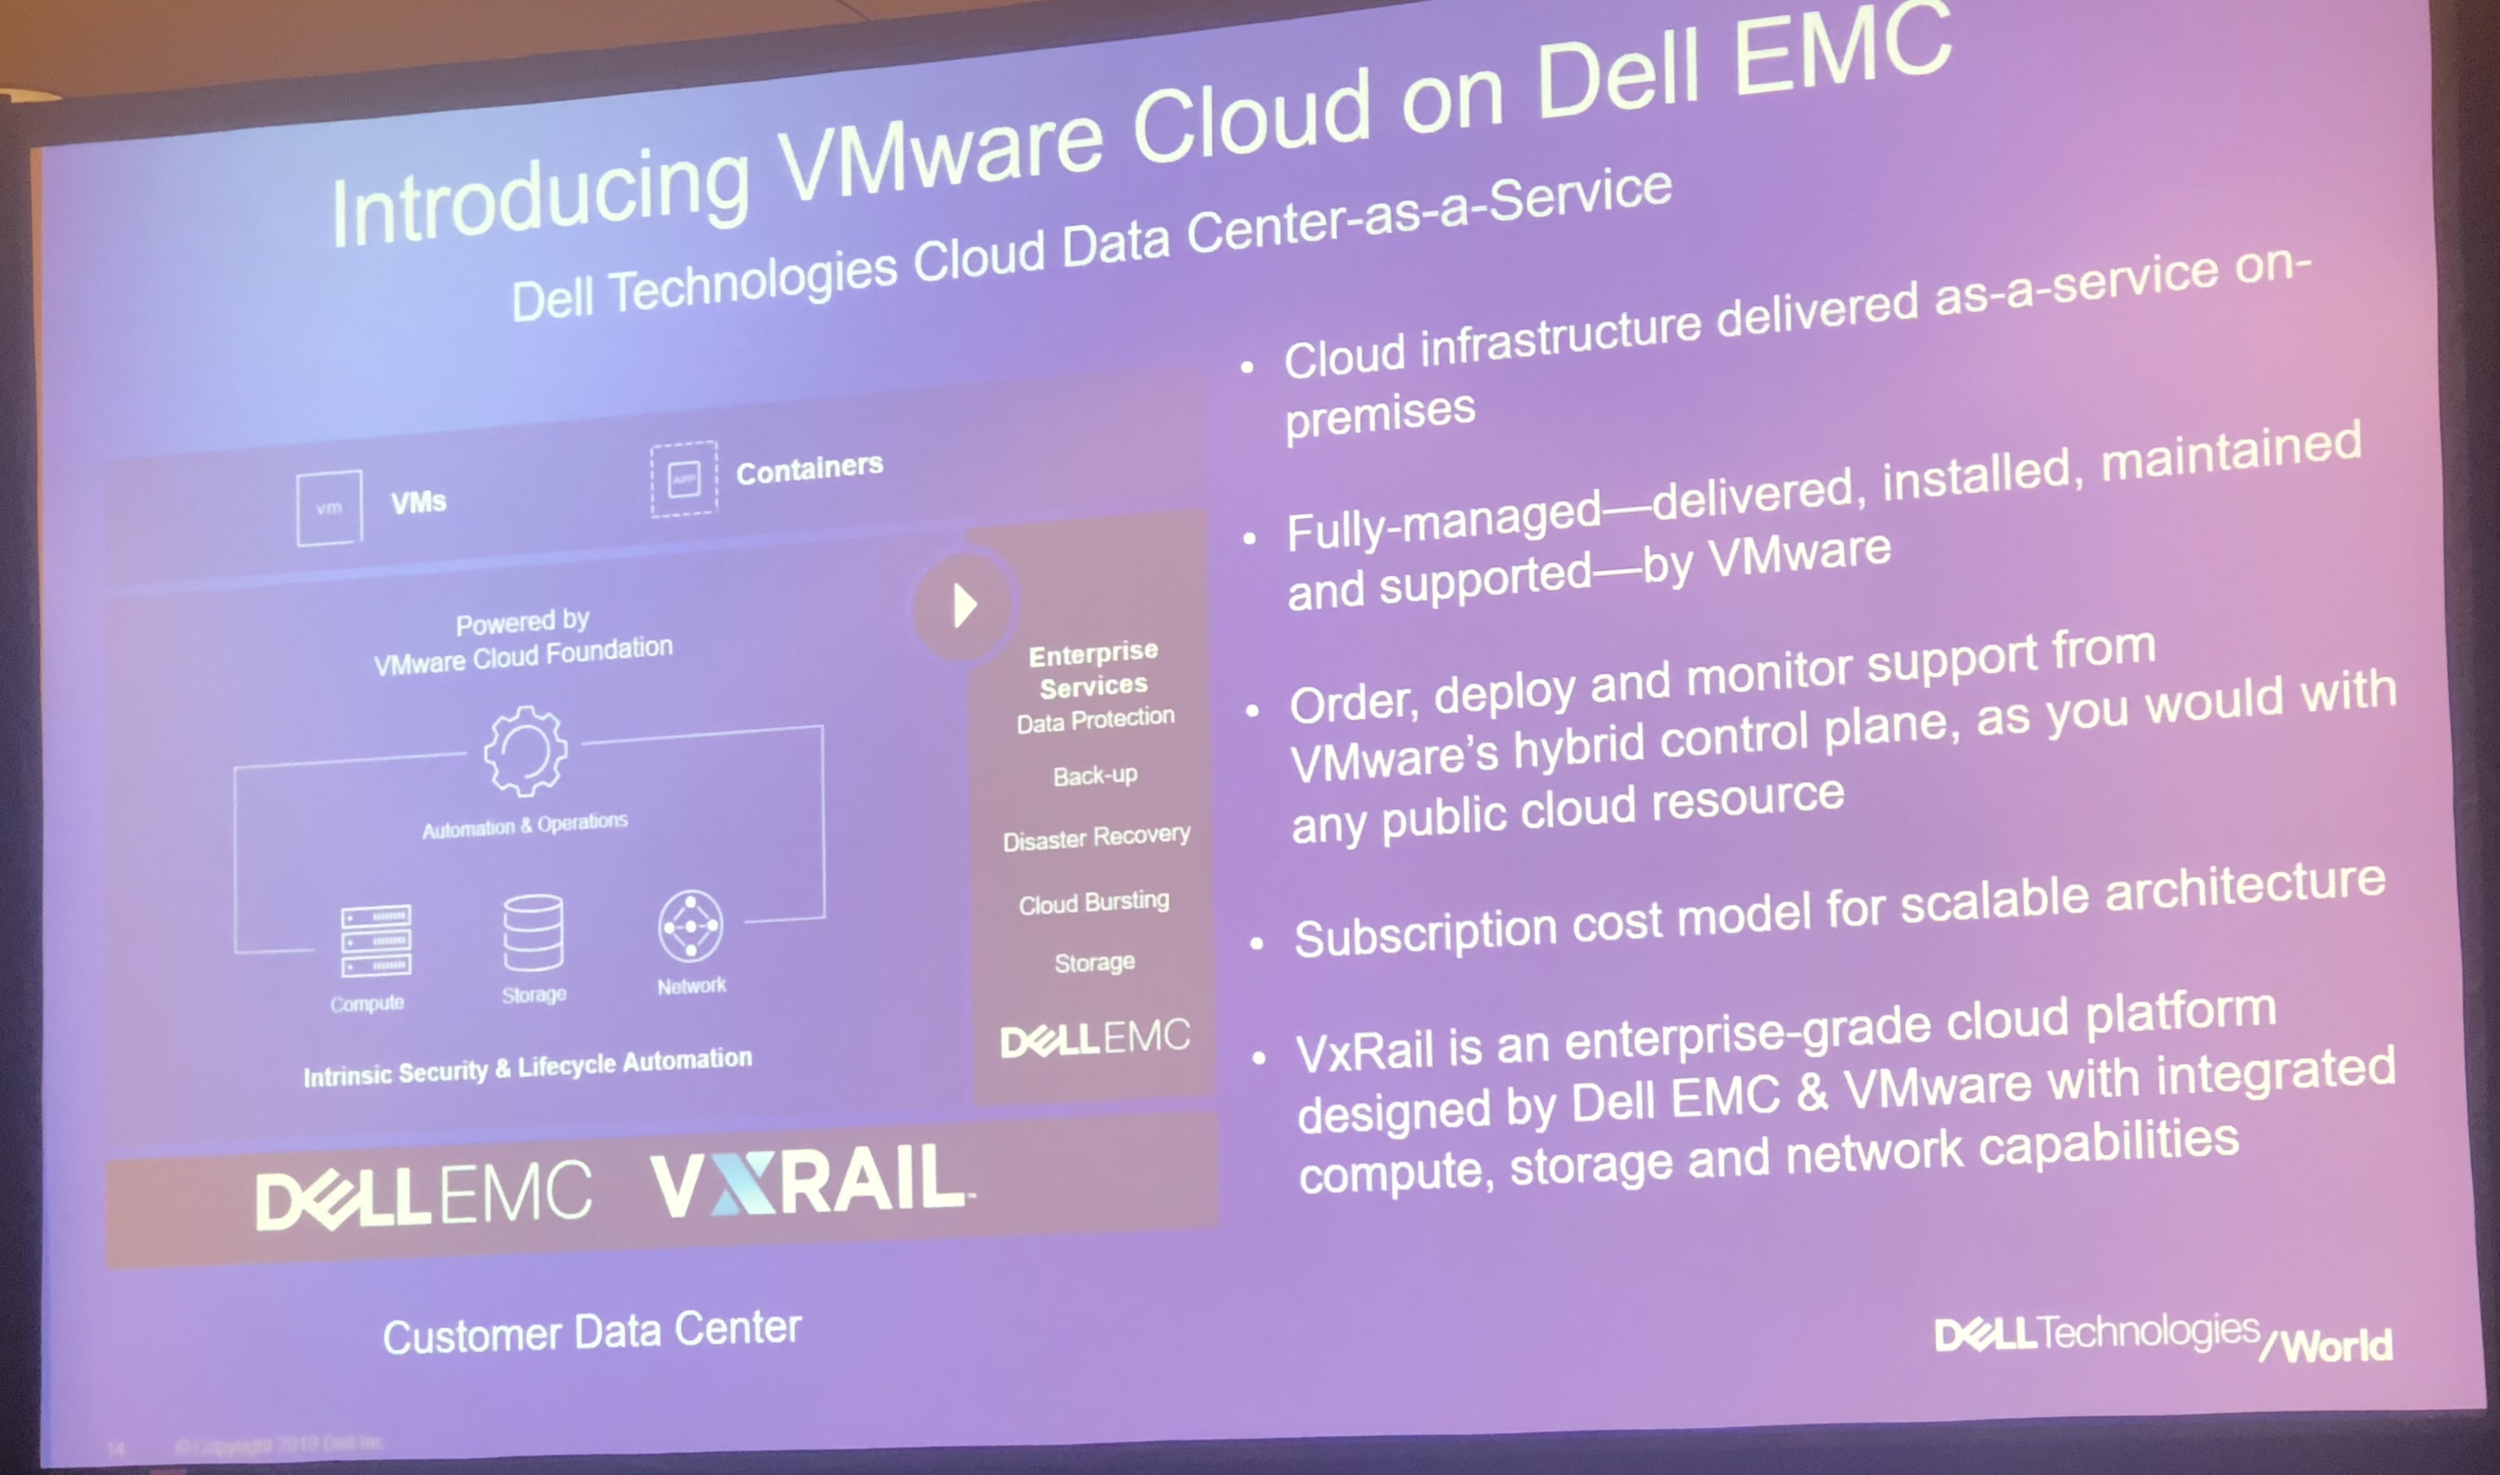 Introducing_VMware_Cloud_on_Dell_EMC_IMG_5033.png